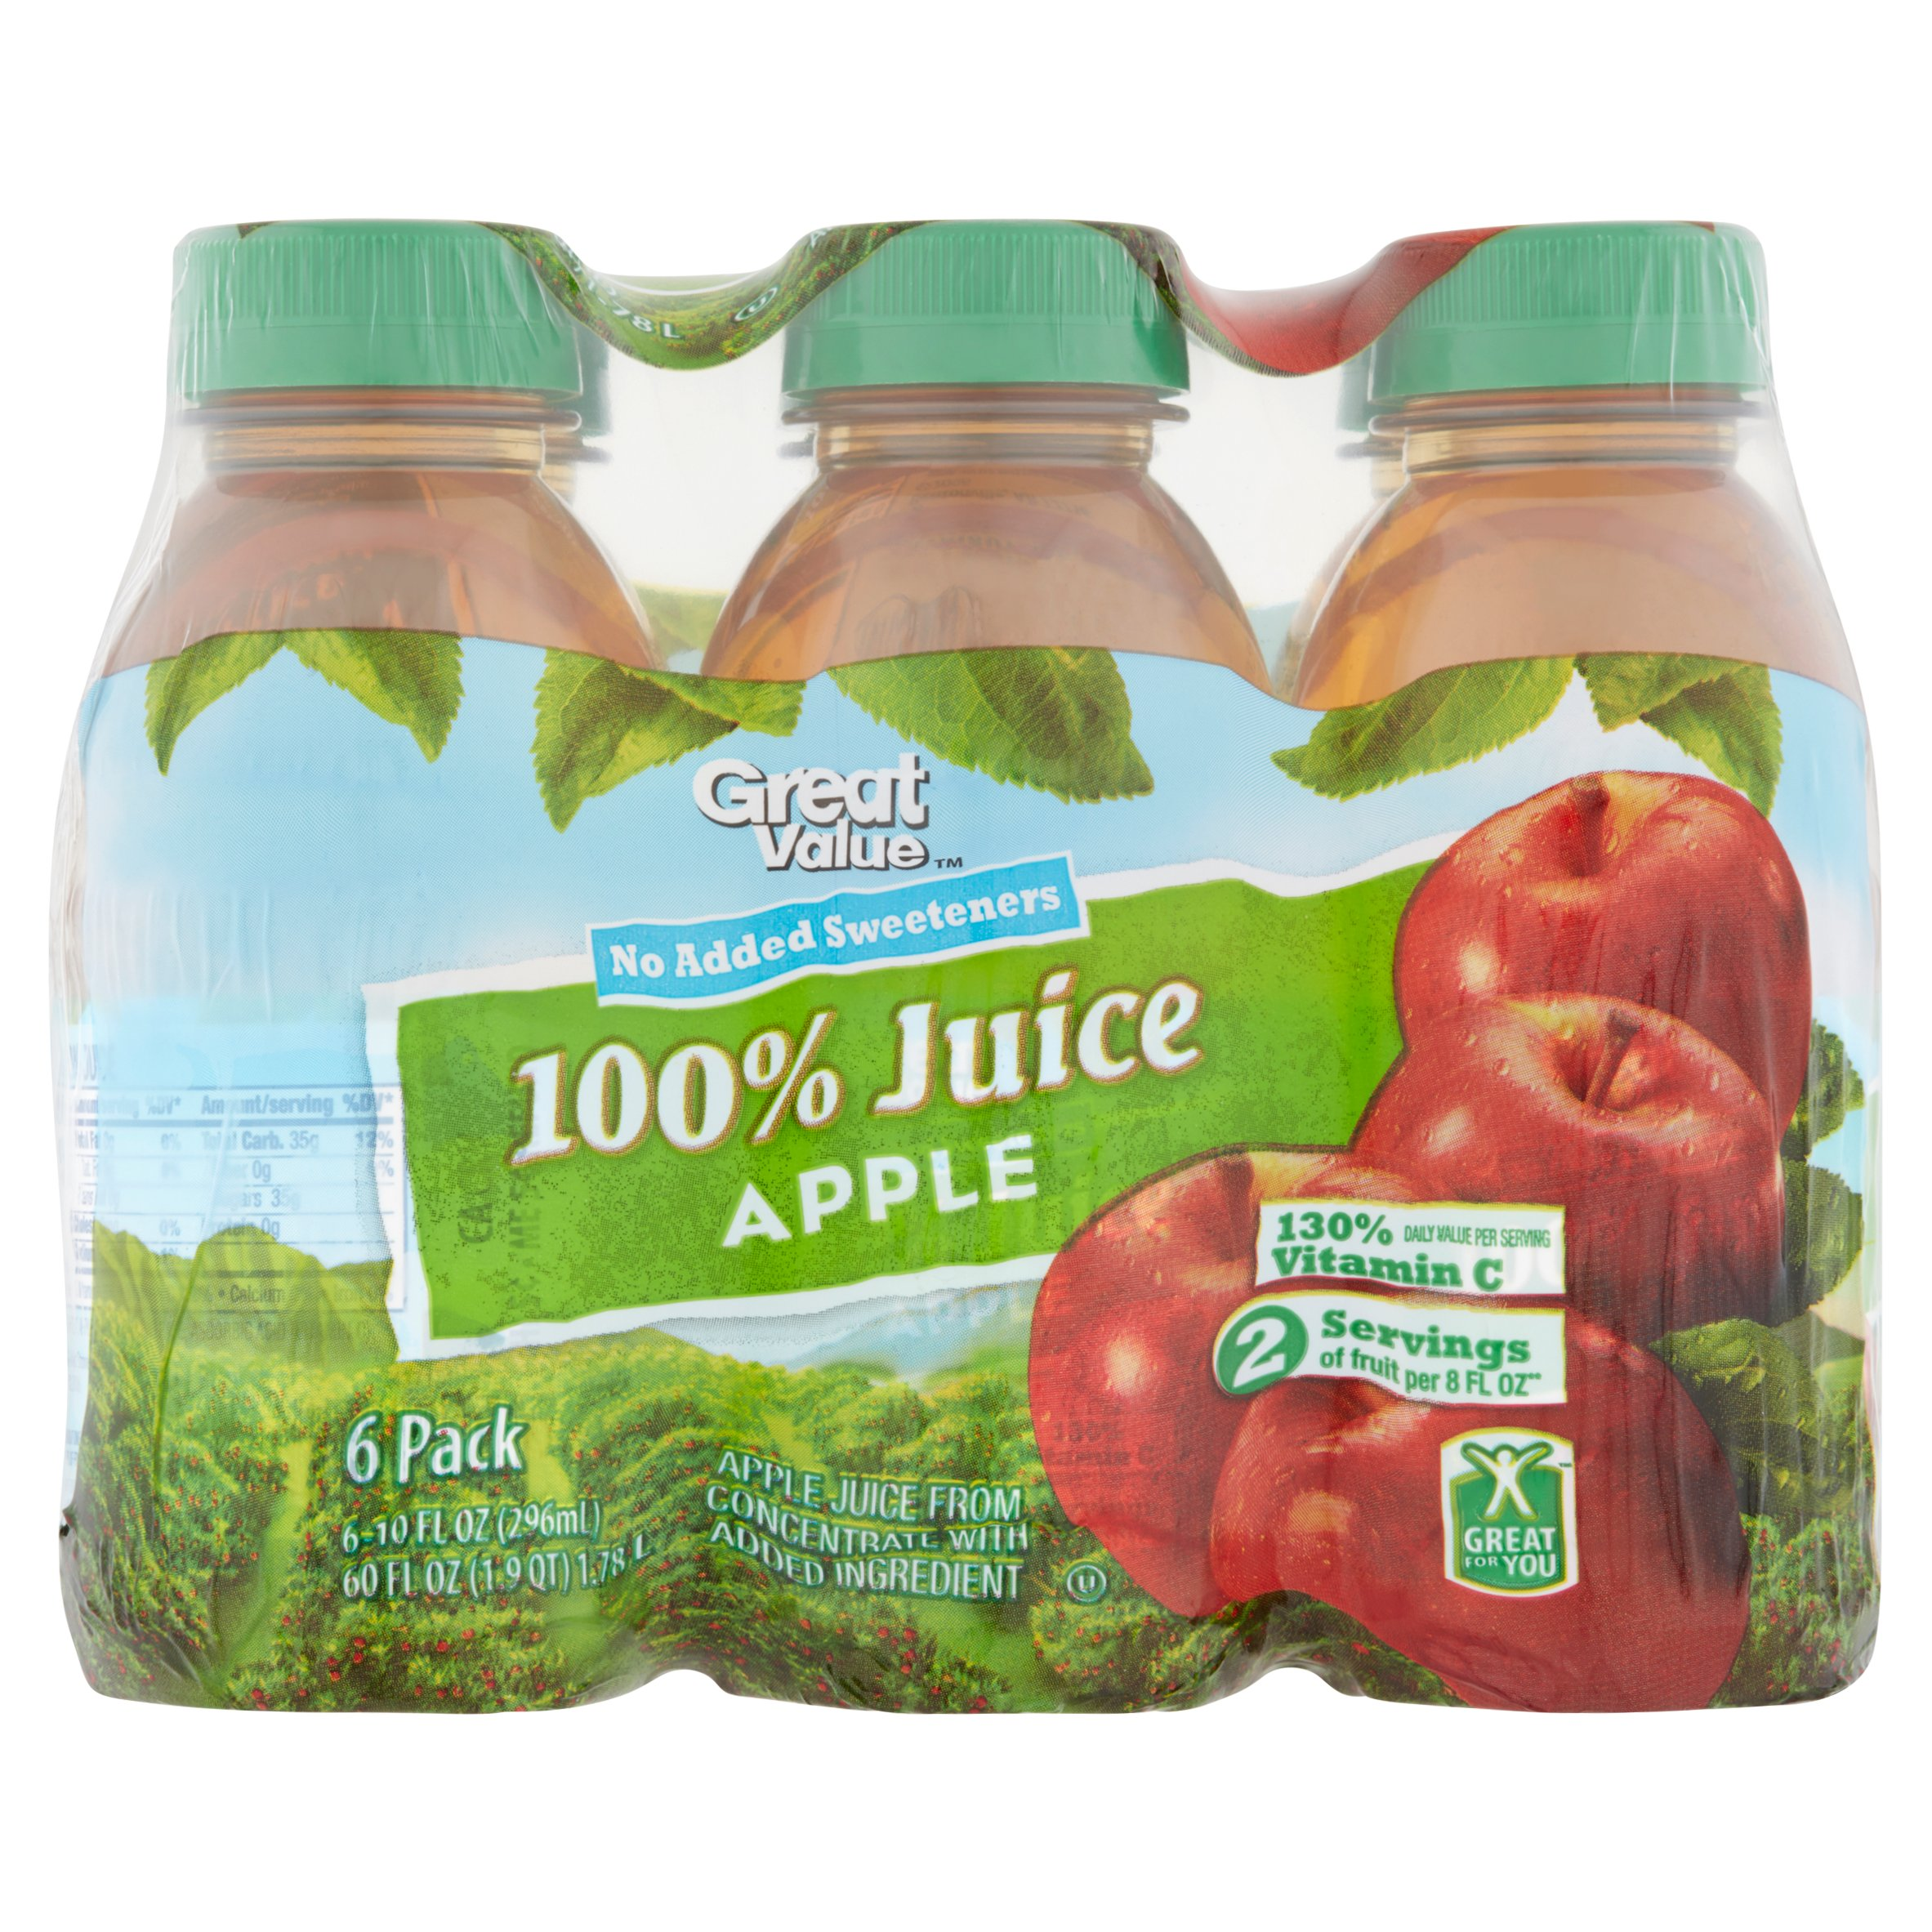 Great Value 100% Apple Juice, 6 Ct 60 Oz by Wal-Mart Stores, Inc.